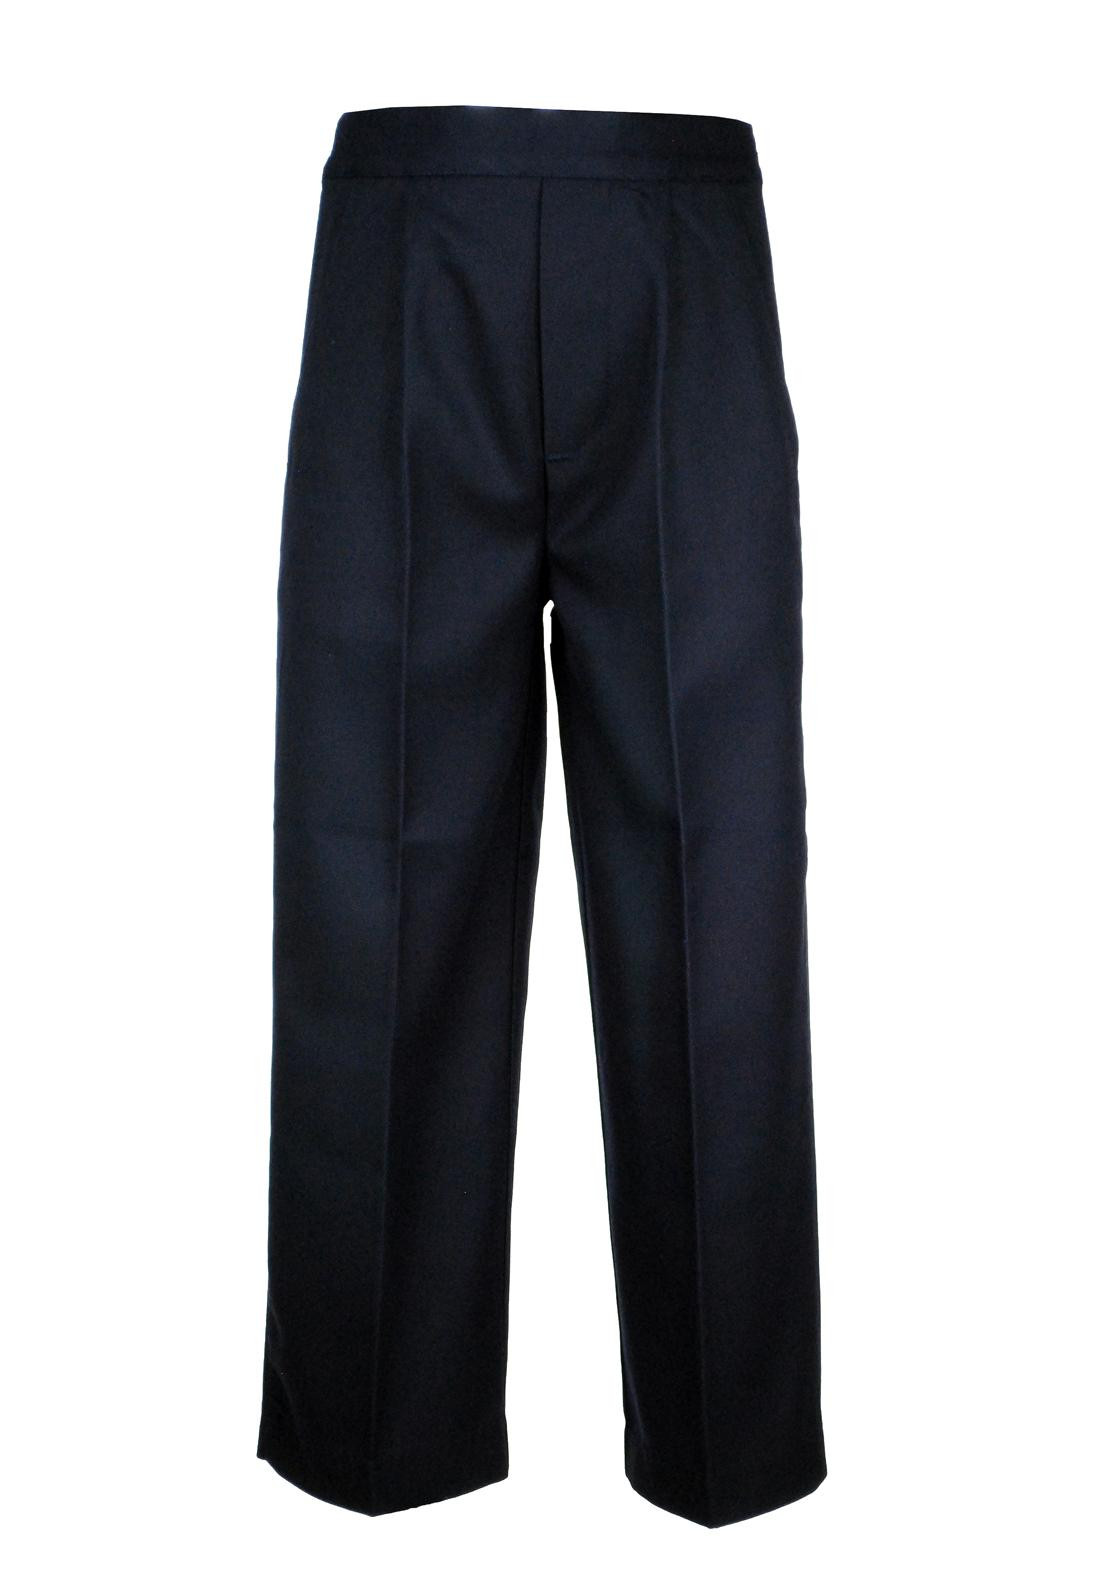 Boys School Uniform Trouser, Navy